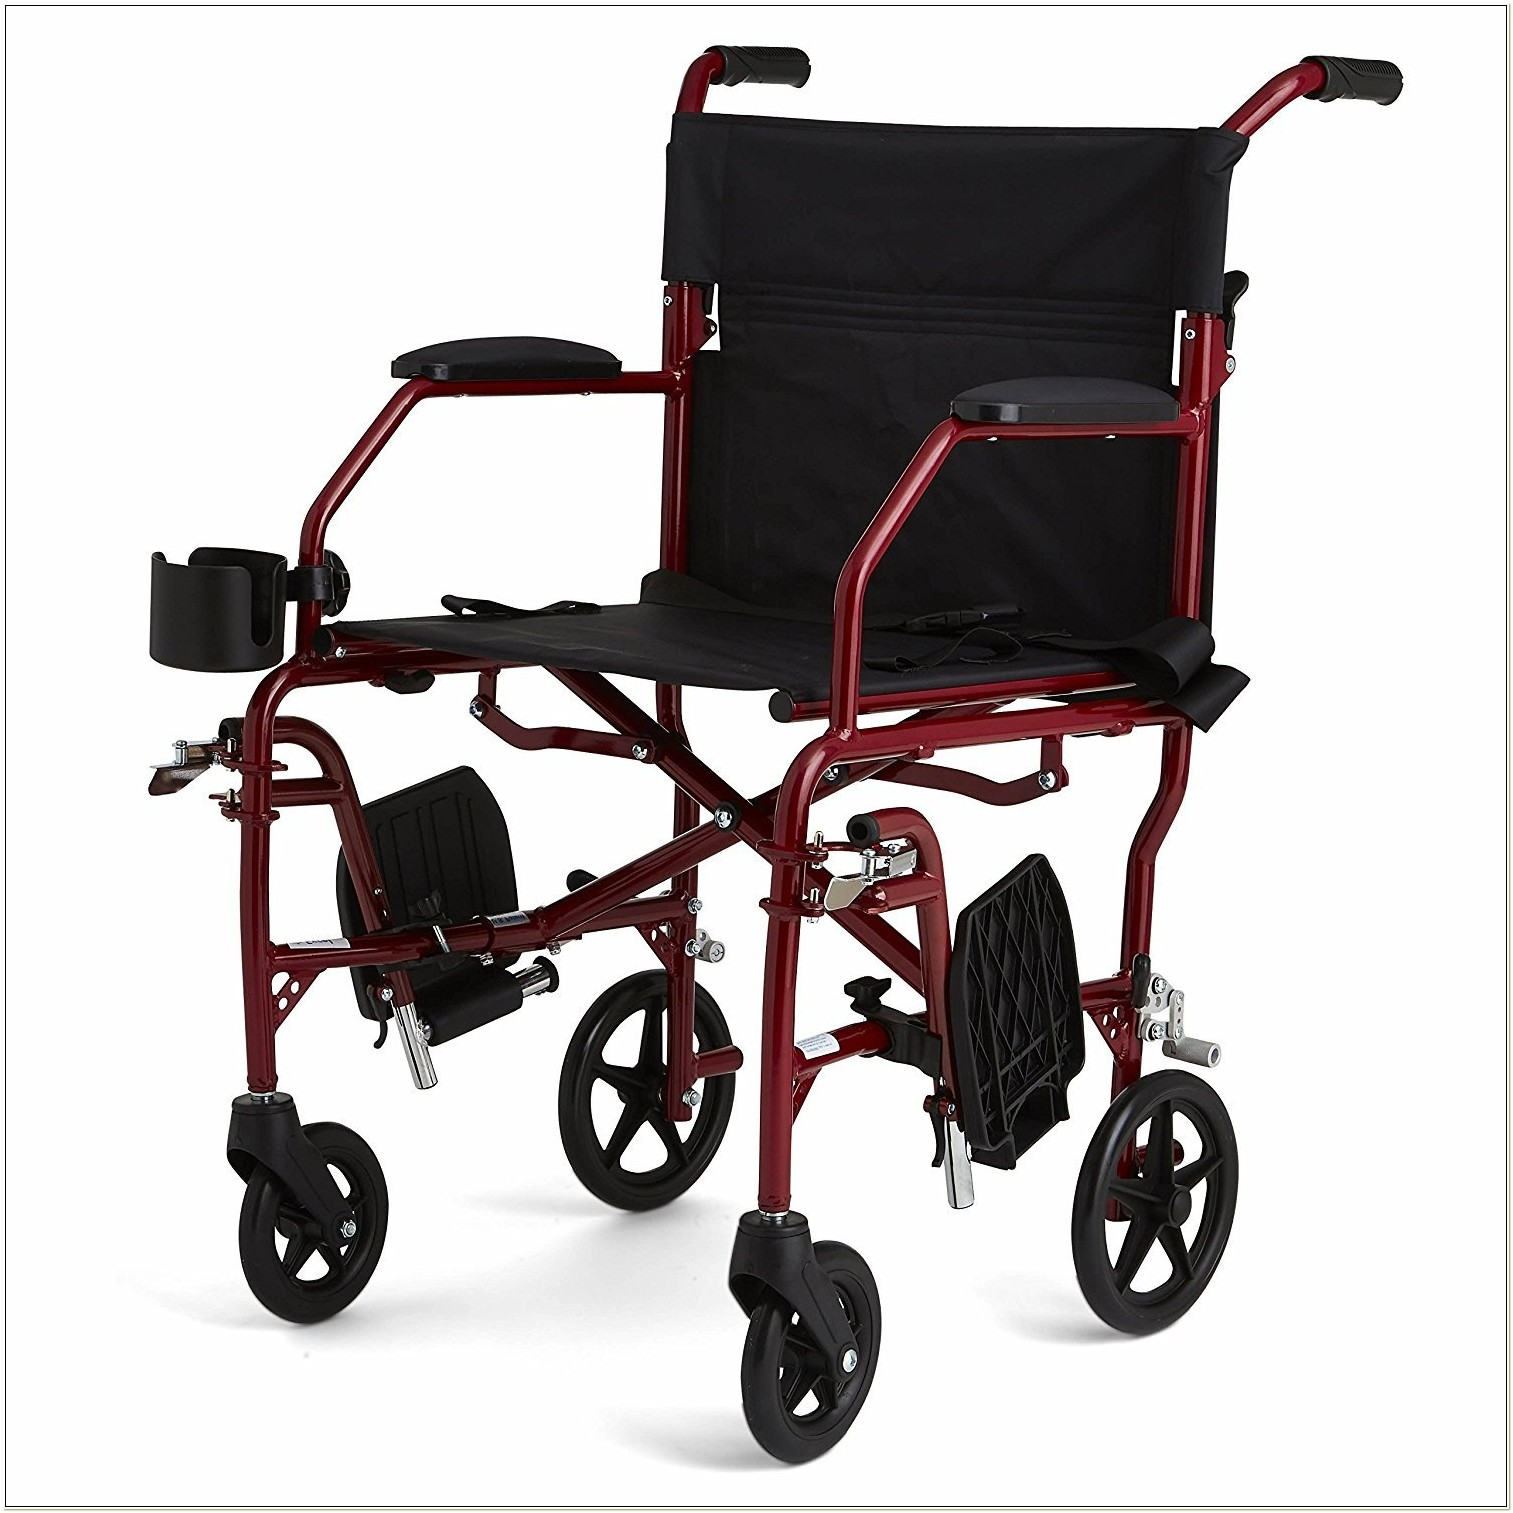 Medline Ultralight Transport Chair 19 Wide Seat